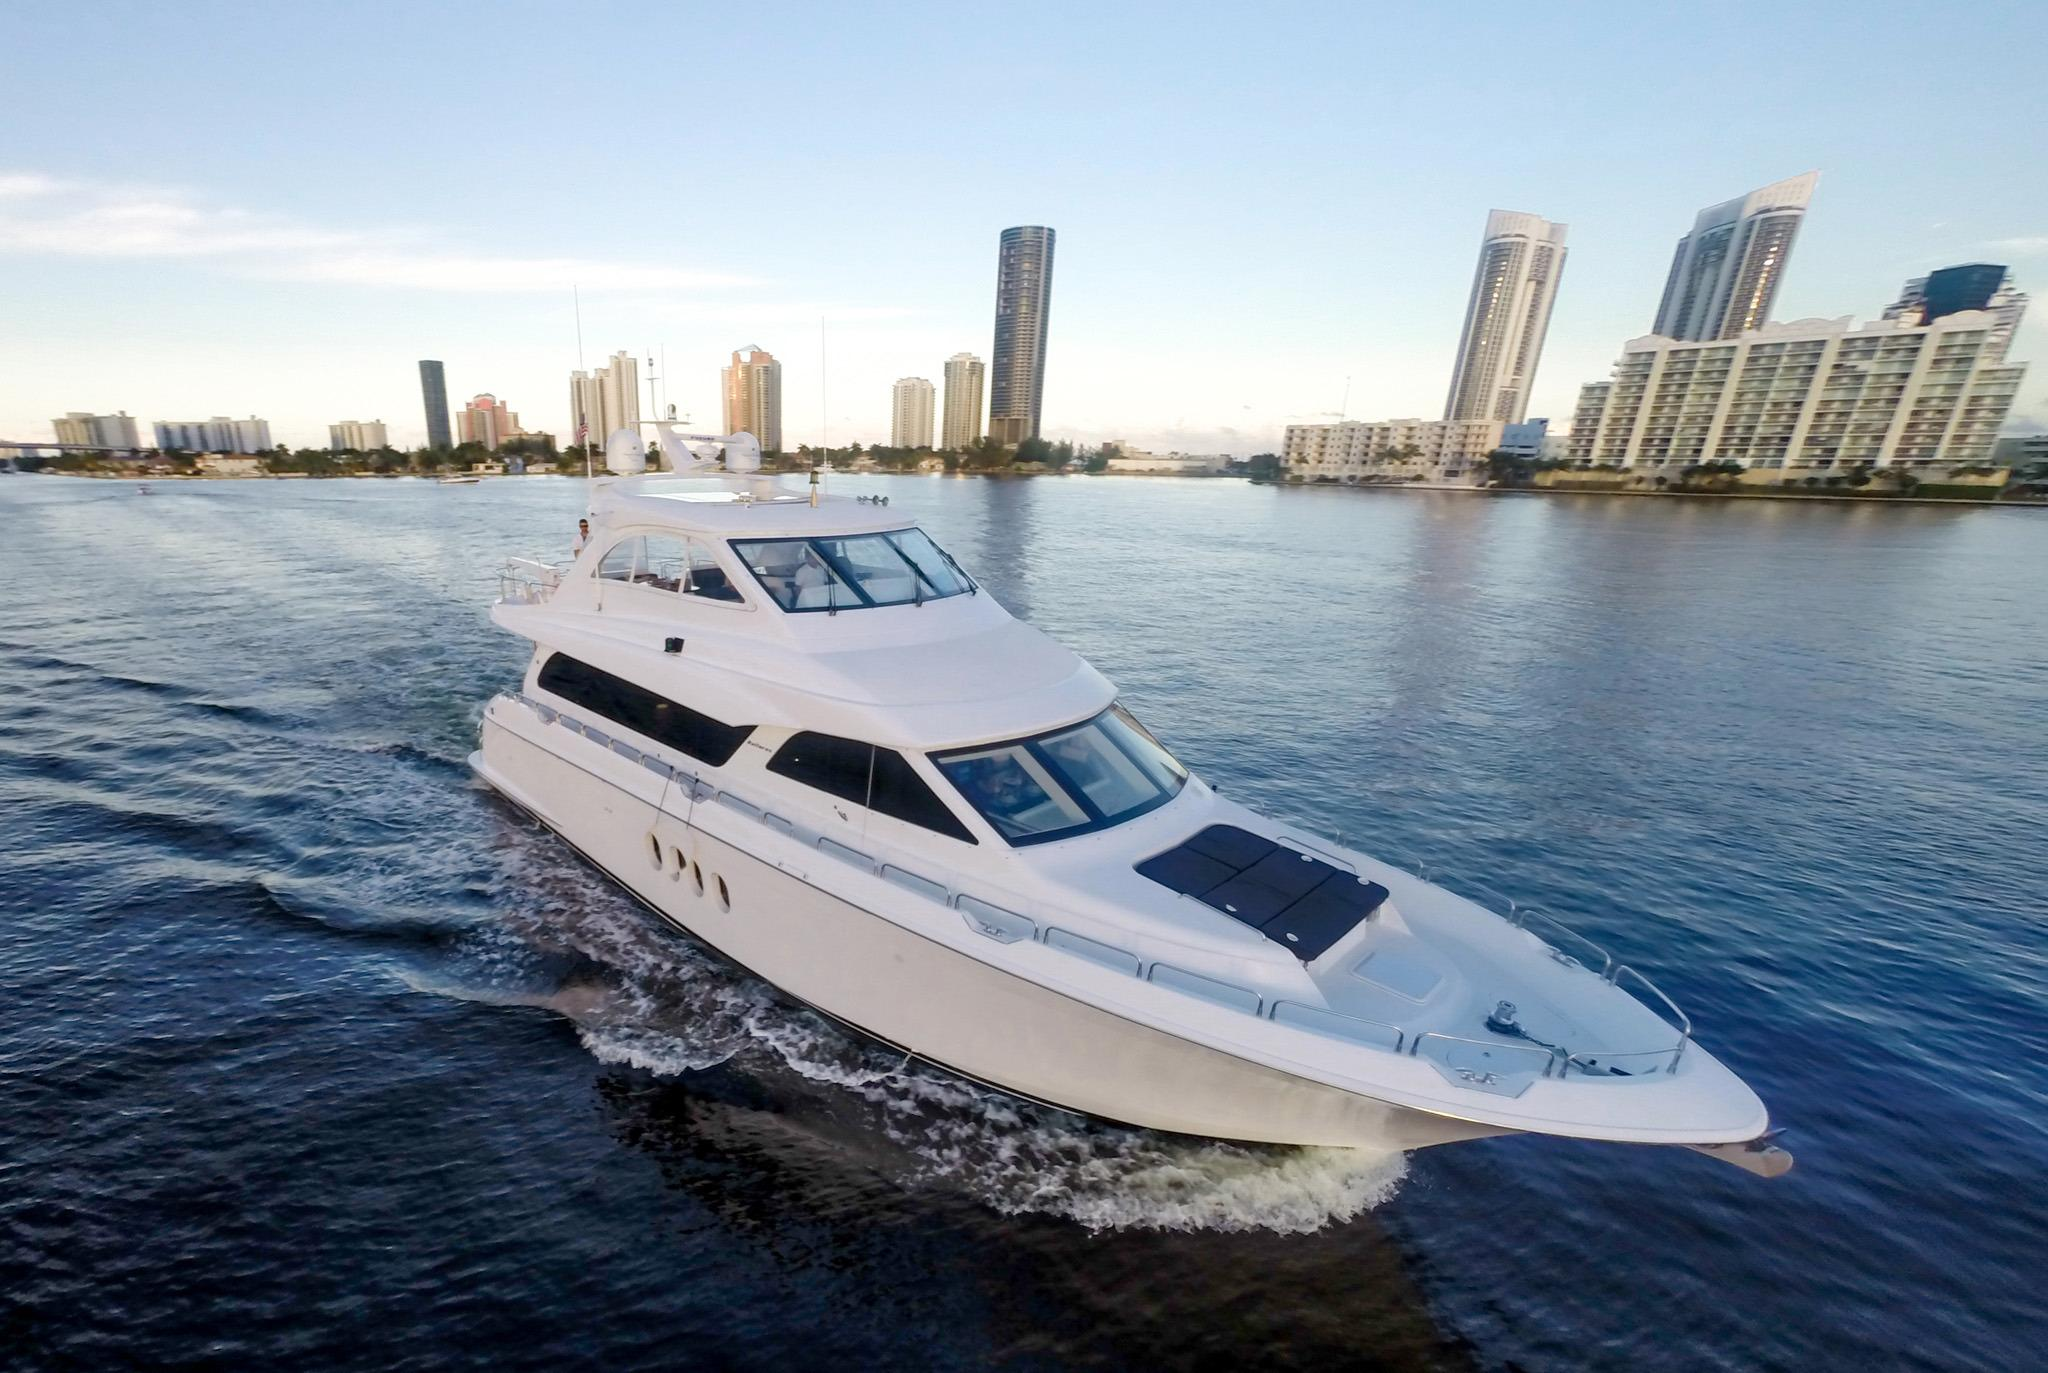 72 hatteras 1 800hp engines 2012 titan for sale in miami for 72 hatteras motor yacht for sale